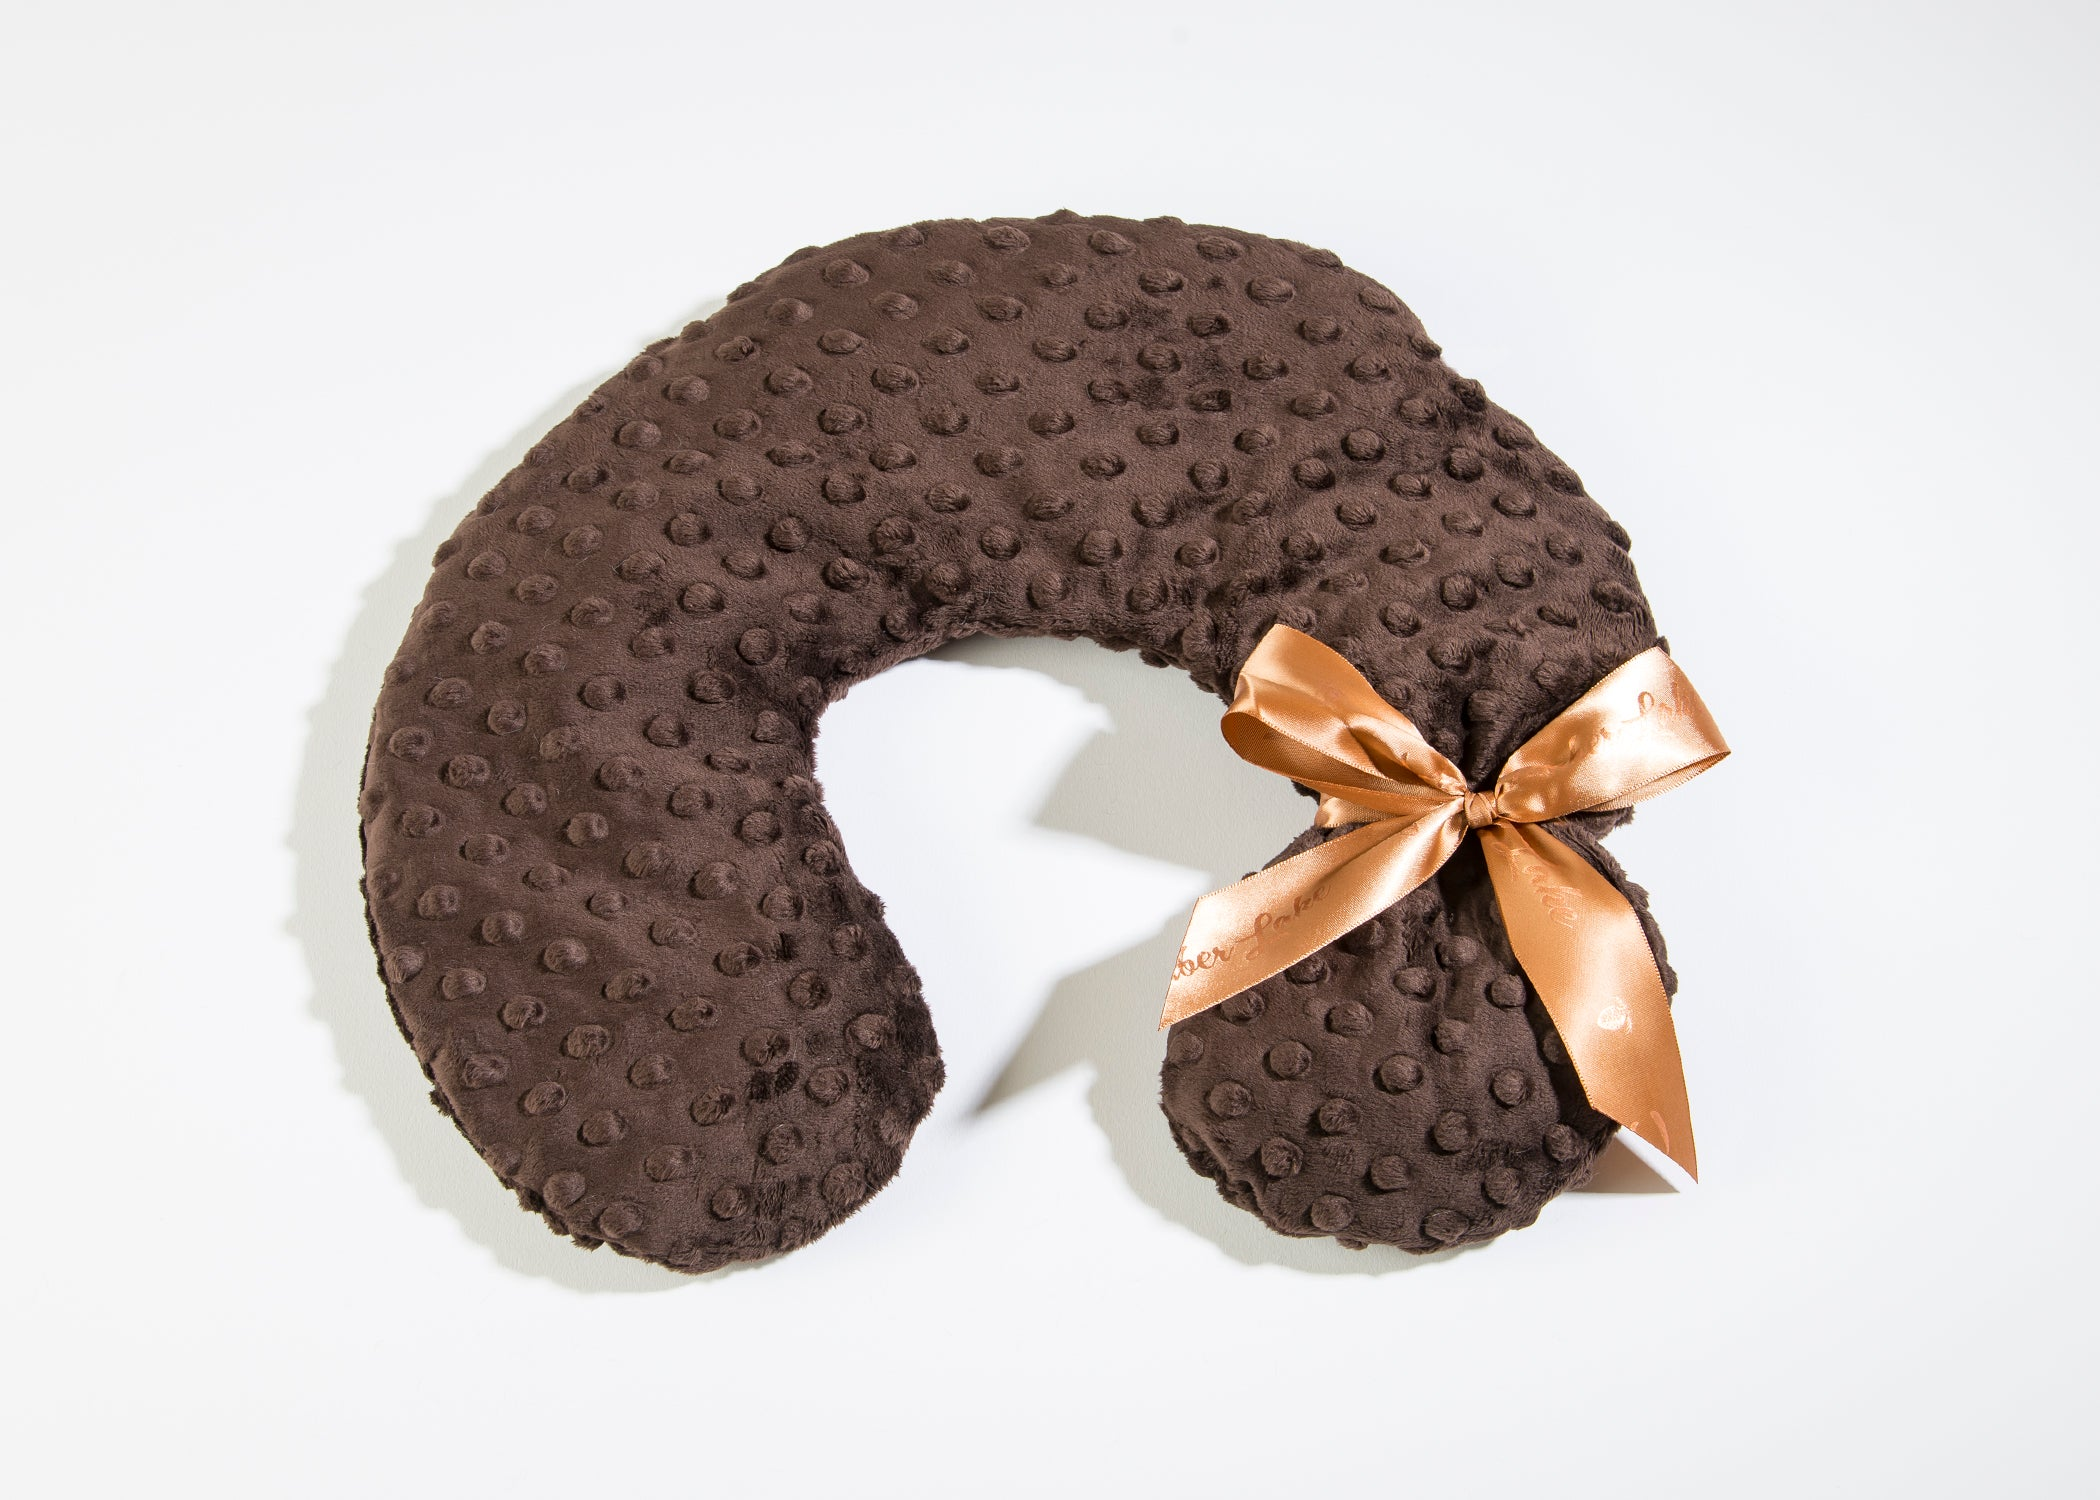 Timber Lake Spa Neck Pillow in Sedona Brown